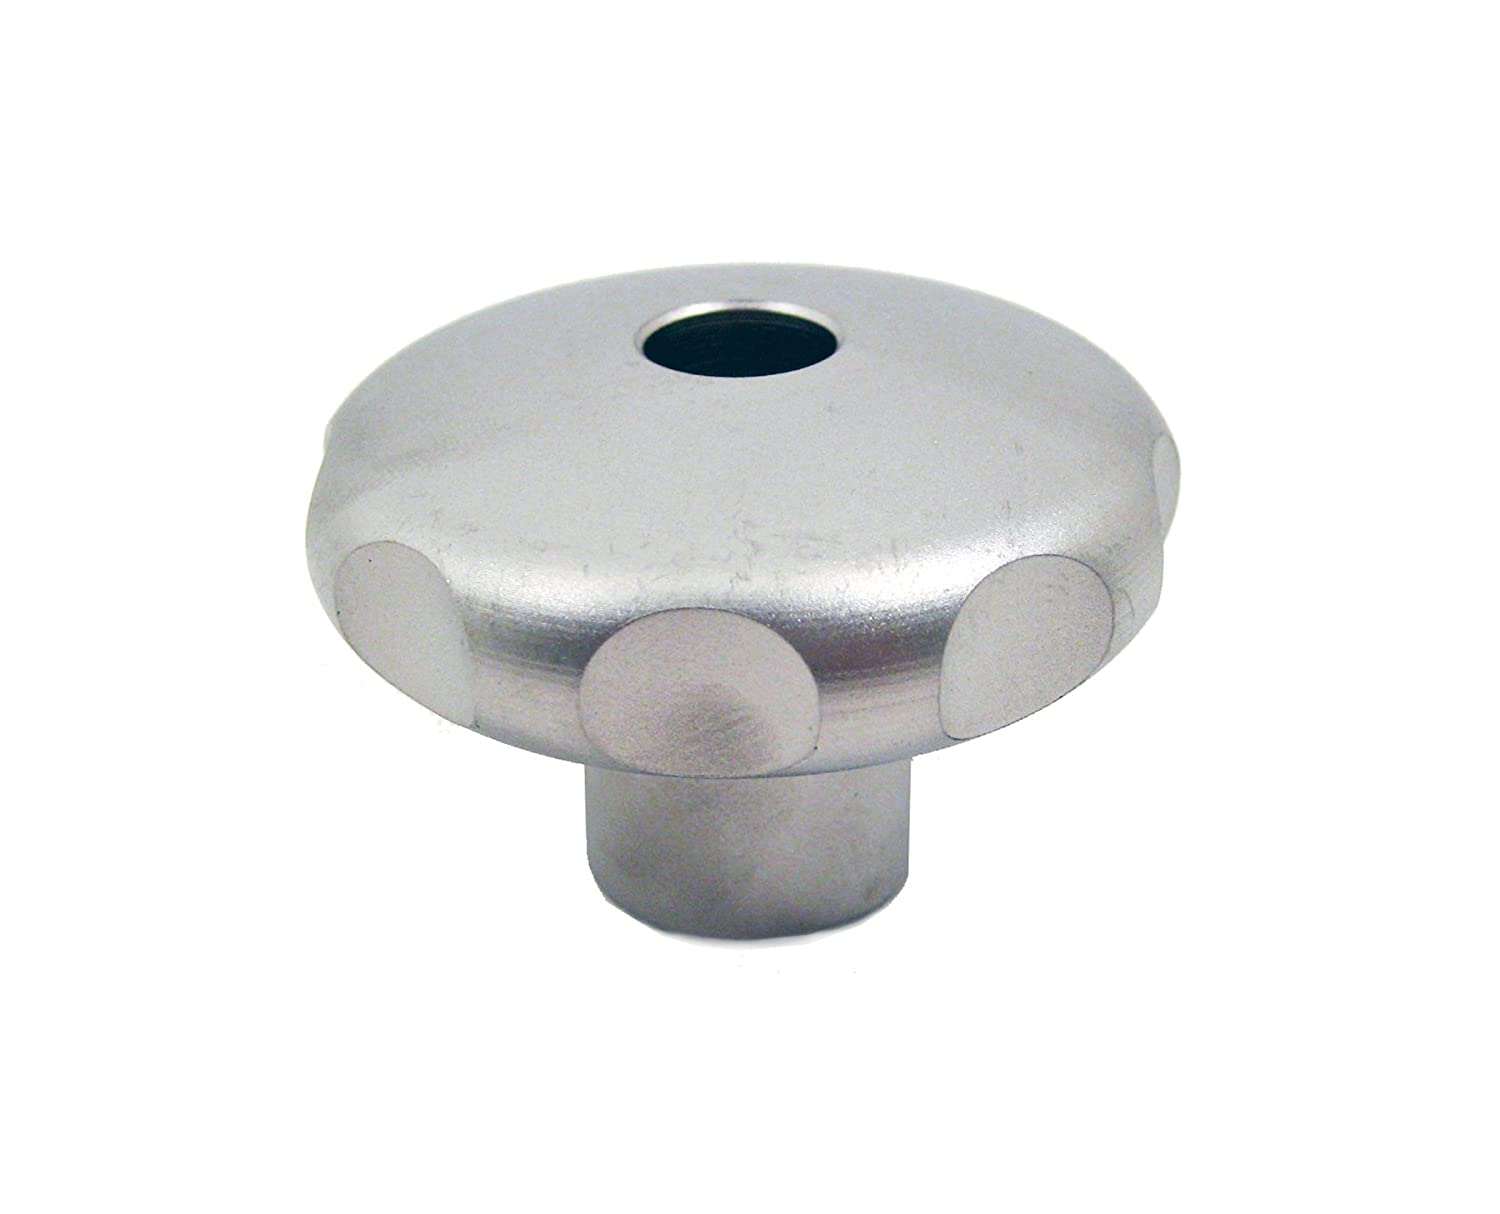 M10 x 1.5 Thread Size x 15mm Thread Depth Threaded Hole Pack of 1 50mm Head Diameter JW Winco Stainless Steel 303 Tapped Hand Knob